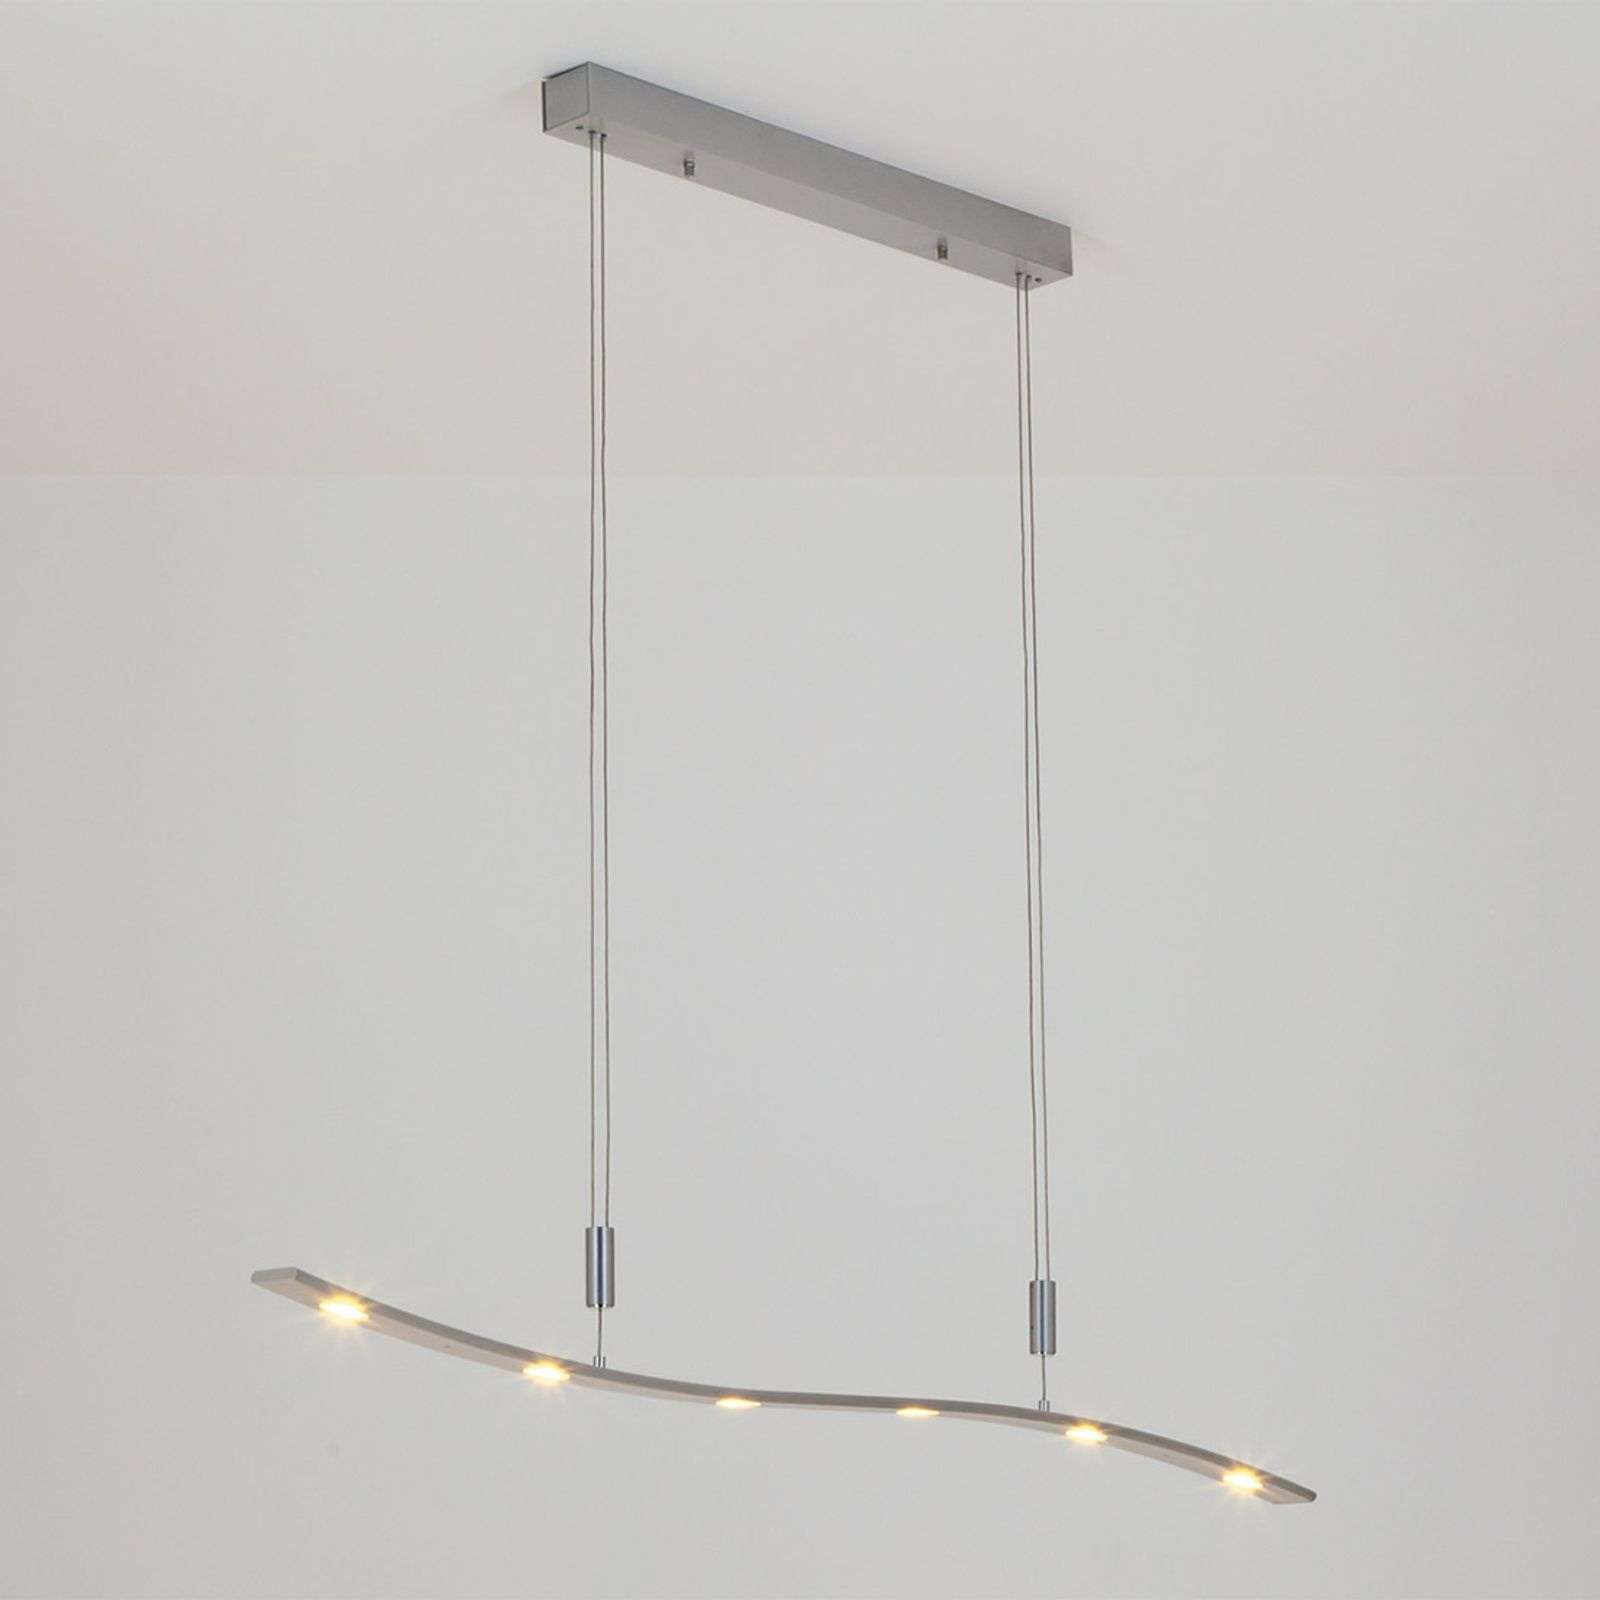 Suspension LED Xalu à hauteur réglable 120 cm